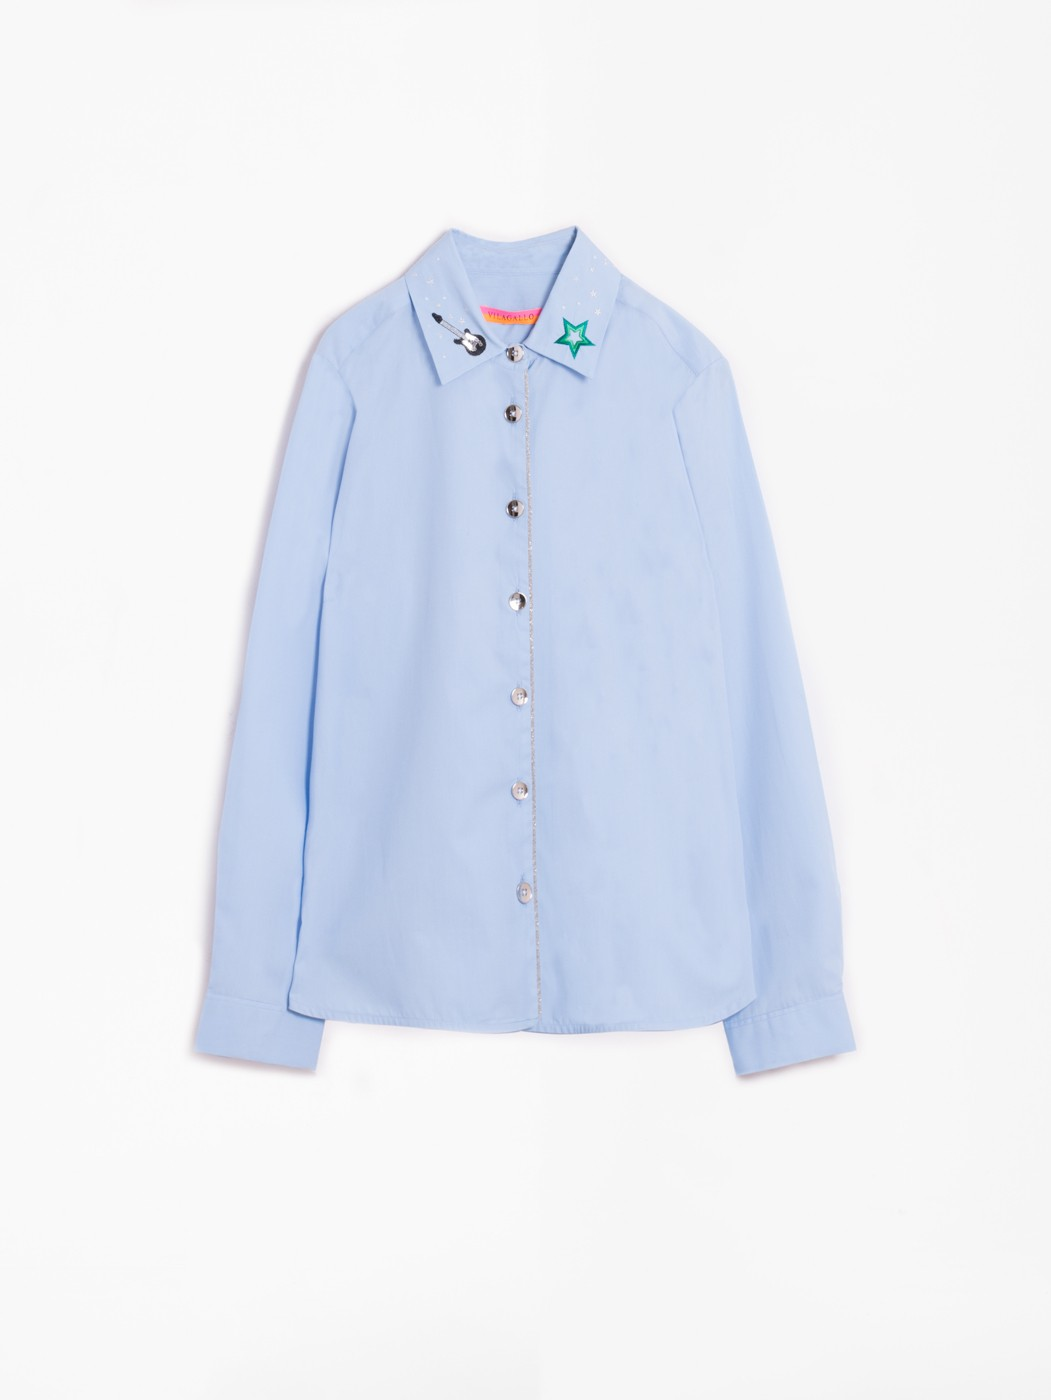 ISABELLA EMBROIDERY SHIRT BLUE POPPLIN